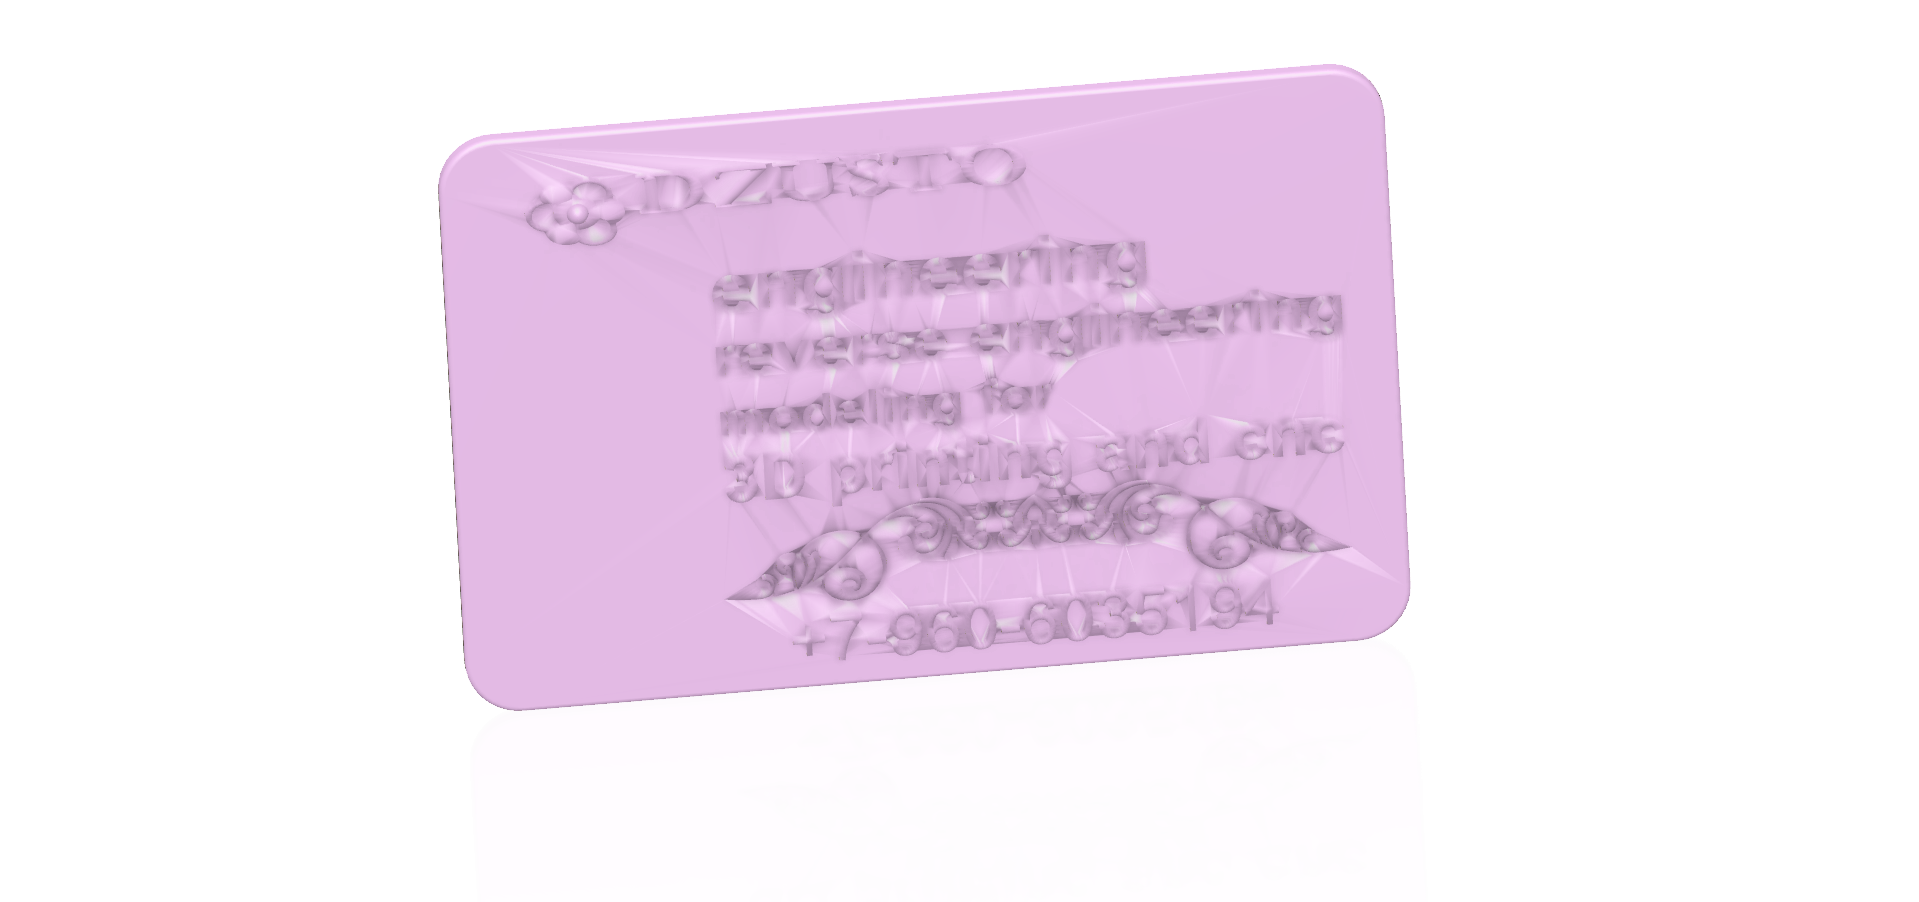 business card 01 v4 STL-91.png Download free STL file Modeling product engineering reverse-engineering 3d print cnc • 3D printing design, Dzusto